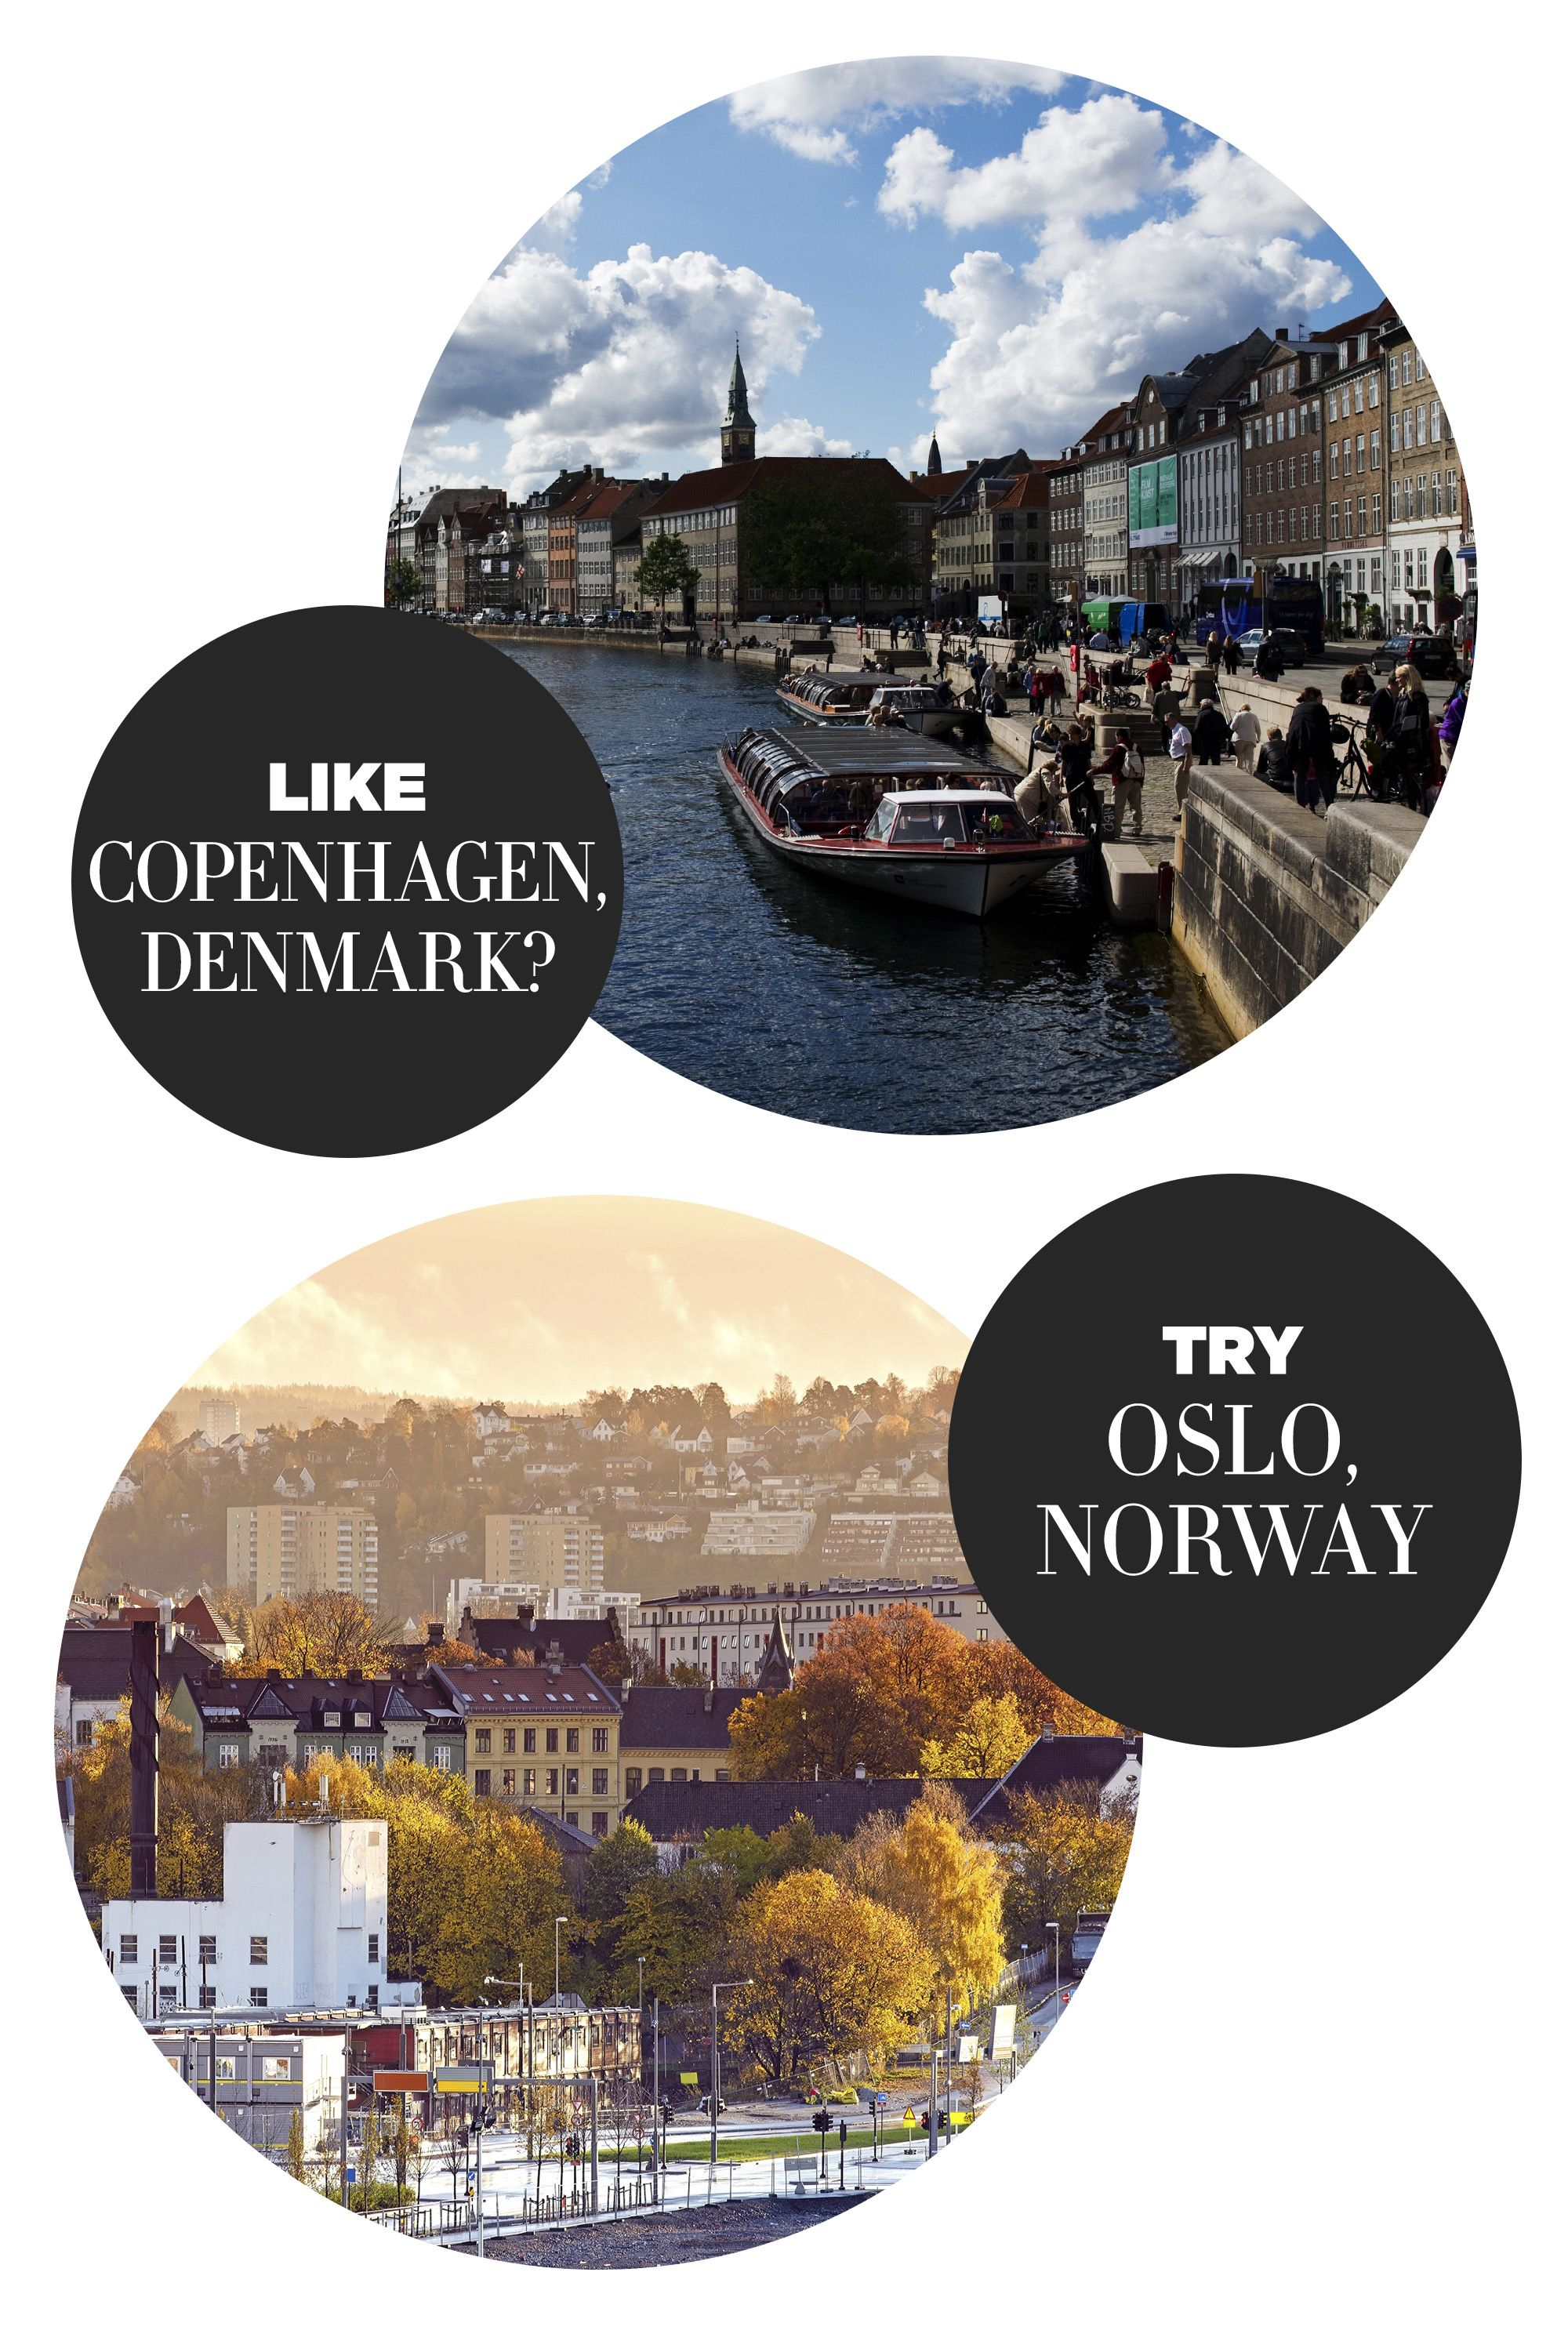 """<p>""""The walkable city is tailor-made for travelers interested in culture, Viking history, and a new twist on Nordic food. There's also easy access to amazing hiking.""""</p><p><strong>Highlights: </strong>The perfect balance of shopping, dining, history and hiking—with many picturesque trails. </p><p><strong>Stay at:</strong> <a href=""""http://www.virtuoso.com/hotels/14368272/hotel-continental-oslo#.VbuXlUJViko"""" target=""""_blank"""">Hotel Continental Oslo</a></p>"""